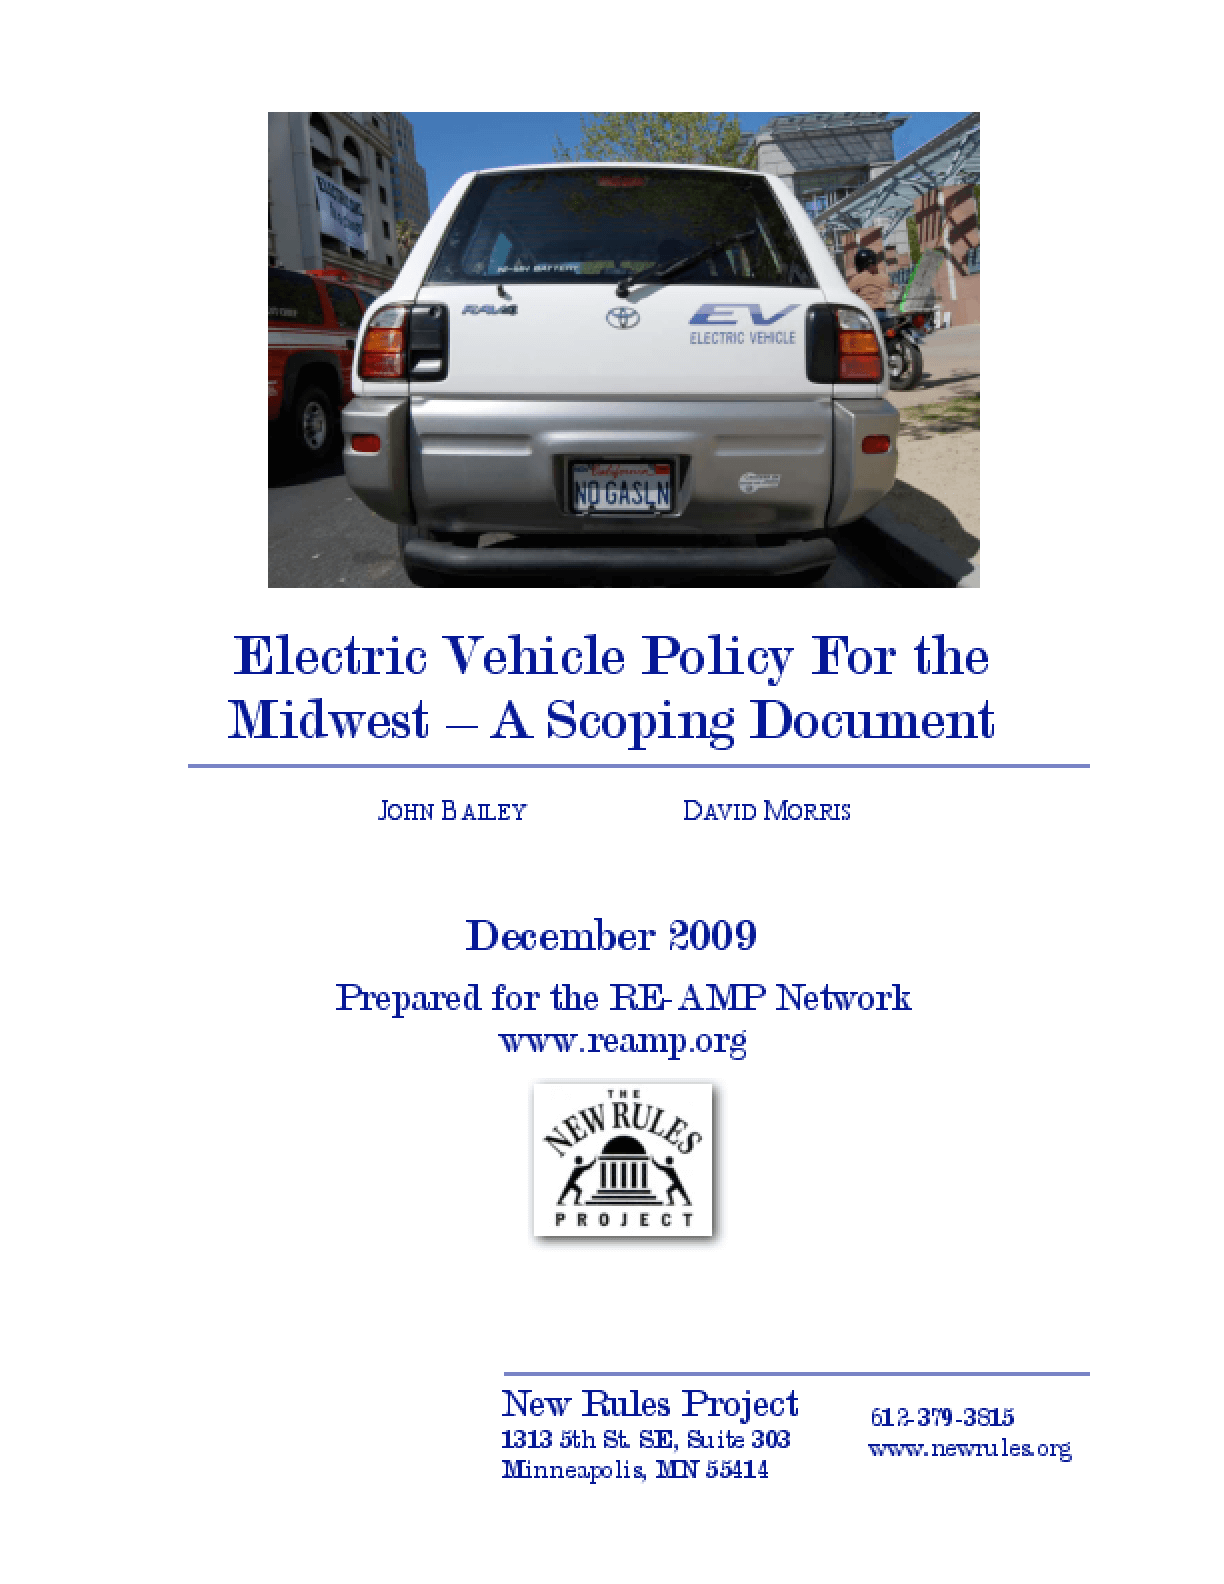 Electric Vehicle Policy for the Midwest: A Scoping Report